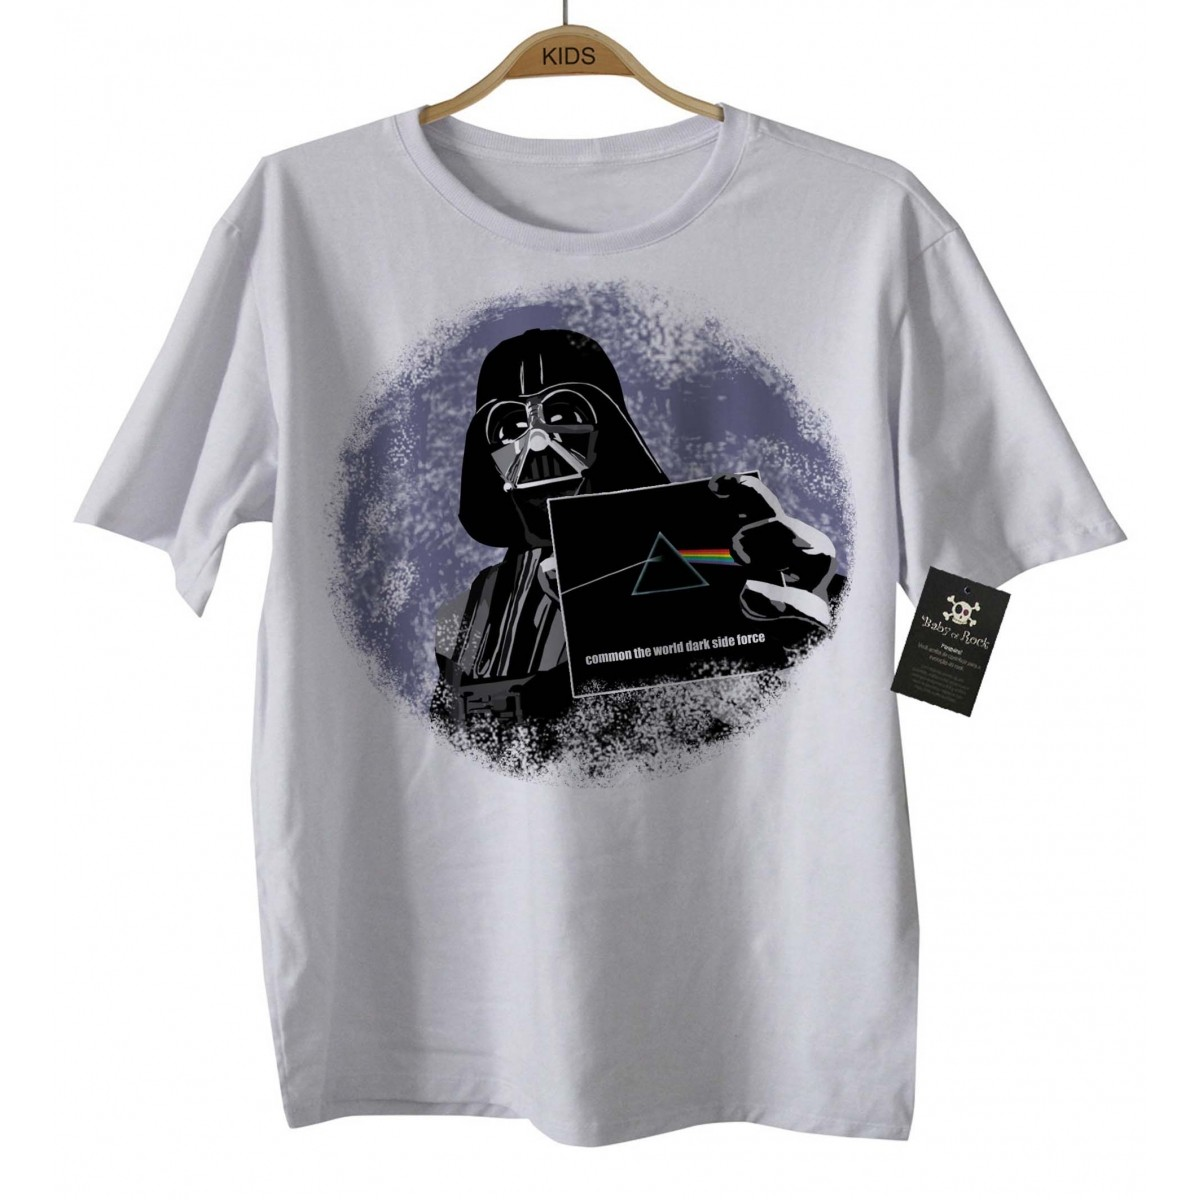 Camiseta Infantil Bebê Floyd/Darth - White  - Baby Monster S/A